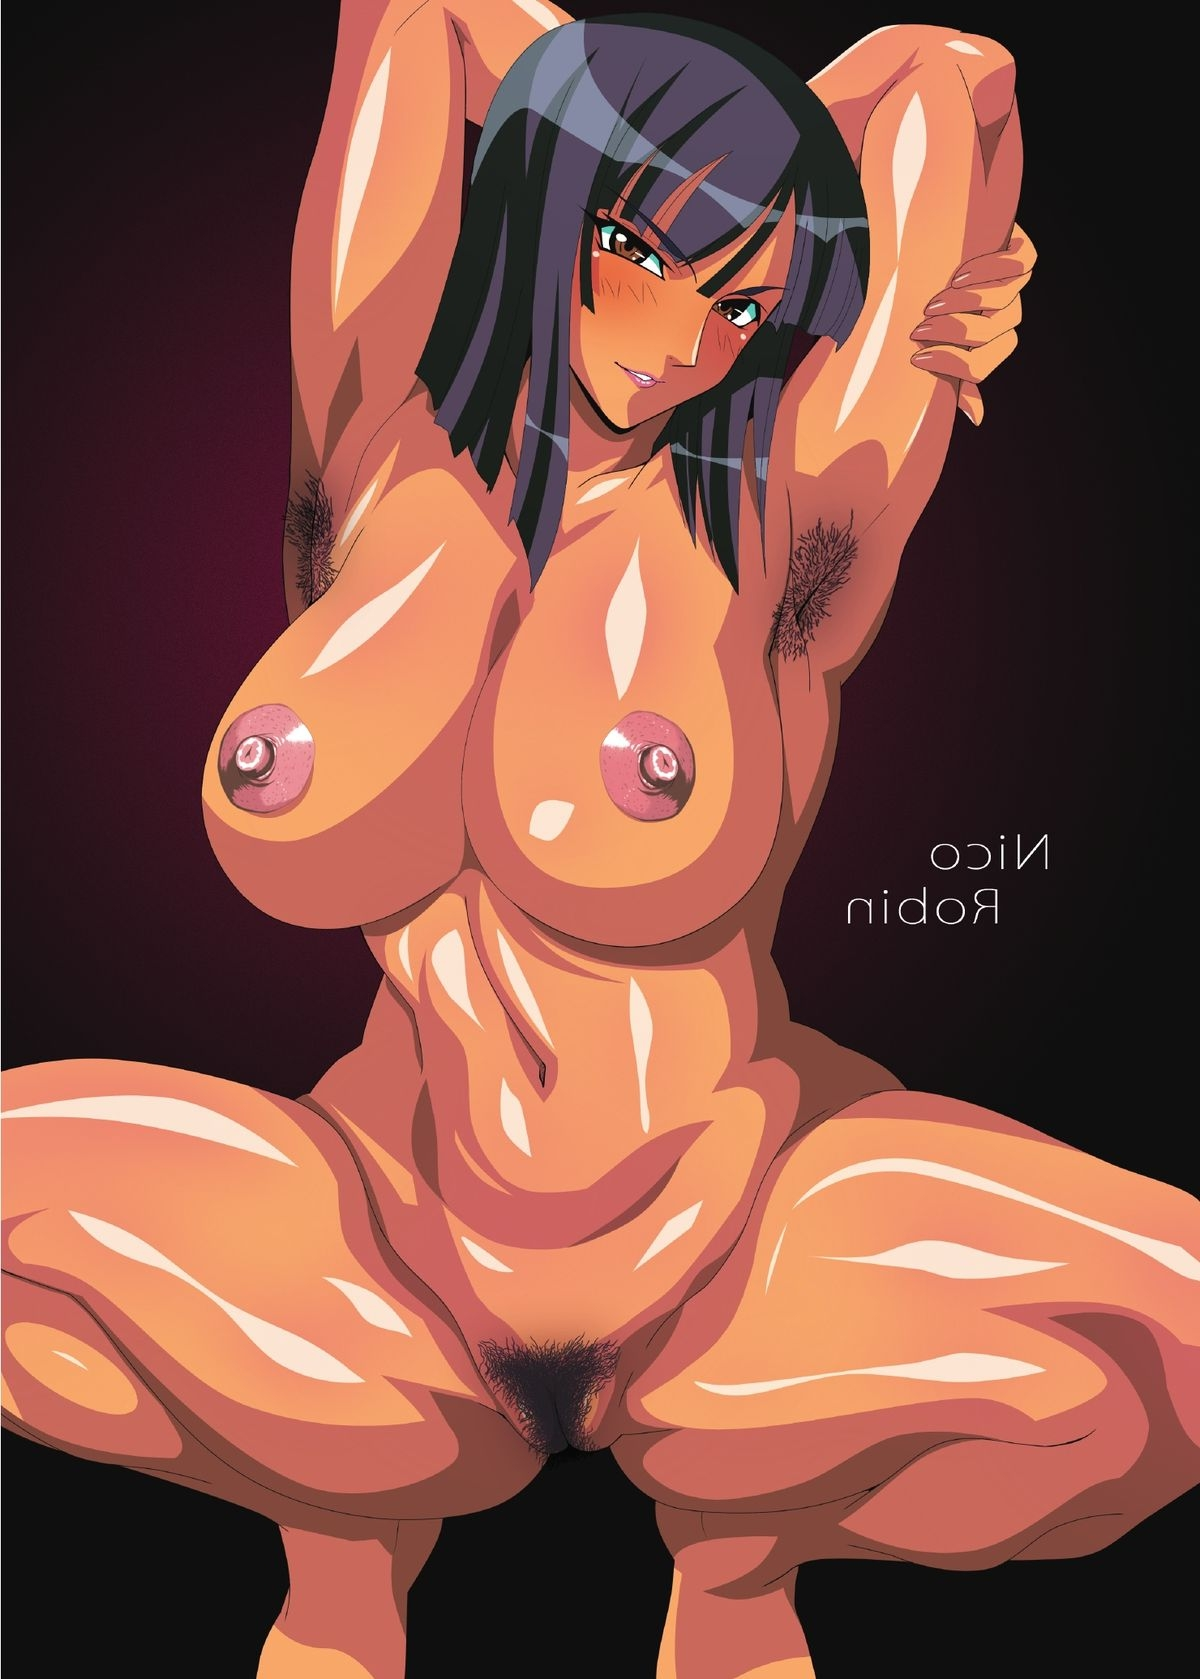 Toon sex pic ##0001301194005 areolae armpit hair armpits artist request belly black hair blush breasts brown eyess erect nipples female highres jpeg artifacts large breasts navel nico robin nipples nude one piece pubic hair pussy seductive smile solo